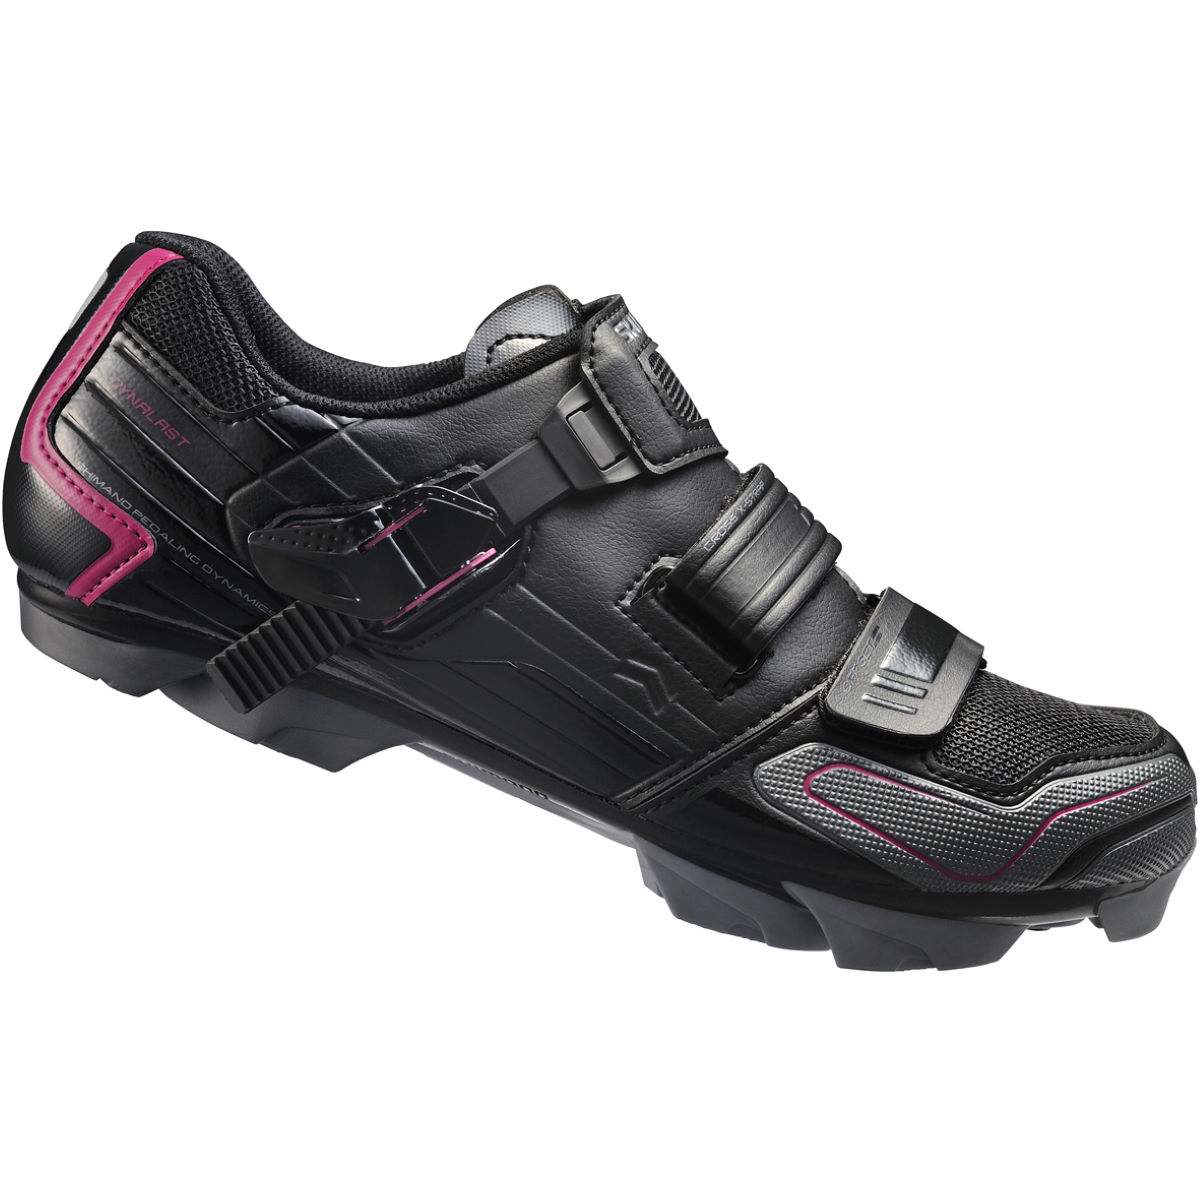 Best Wide Fit Cycling Shoes